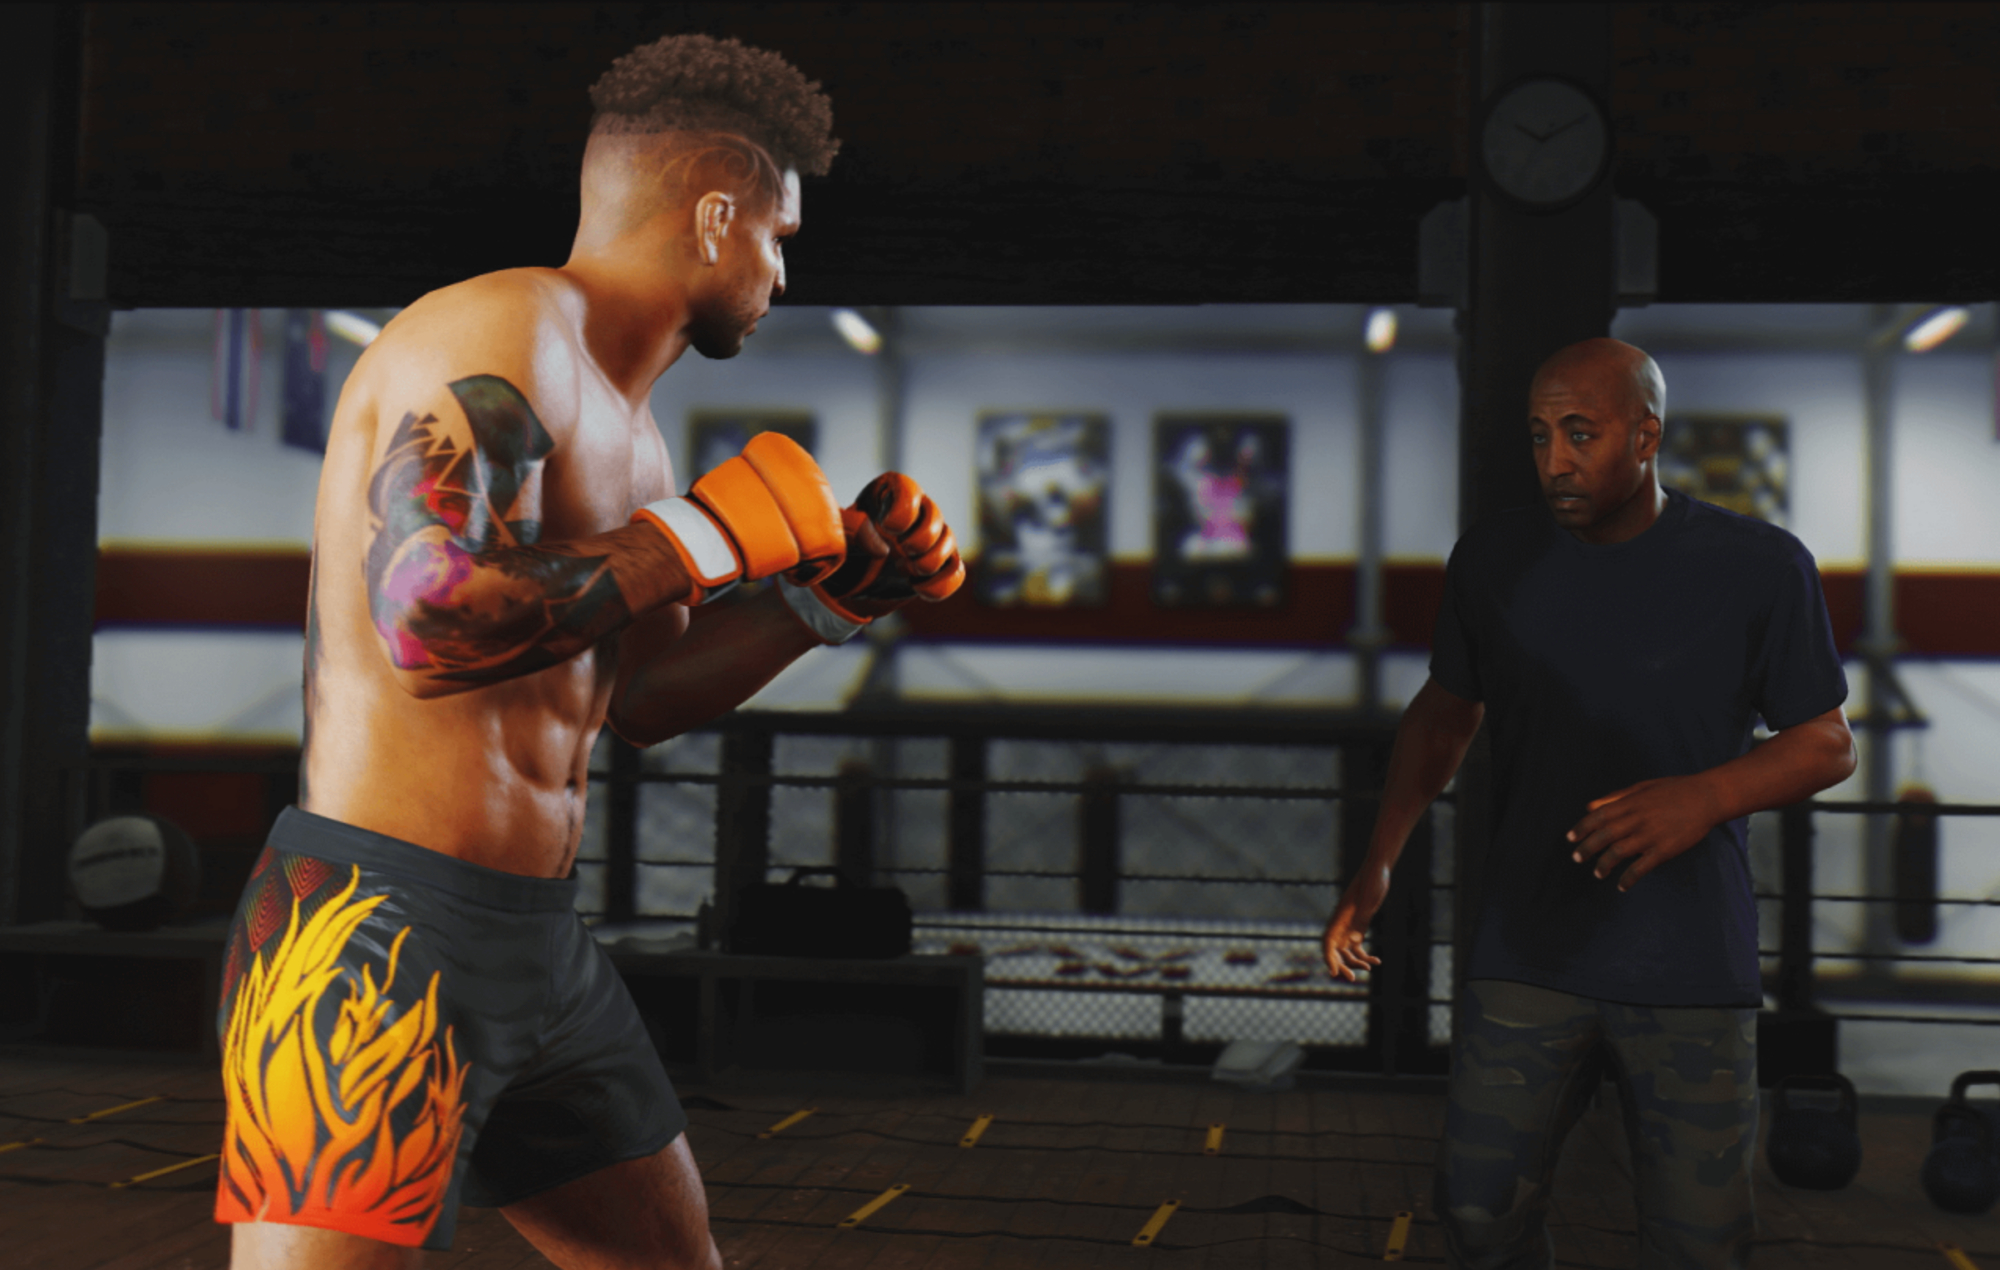 Ea Sports Ufc 4 Details Its New Career Mode Nme